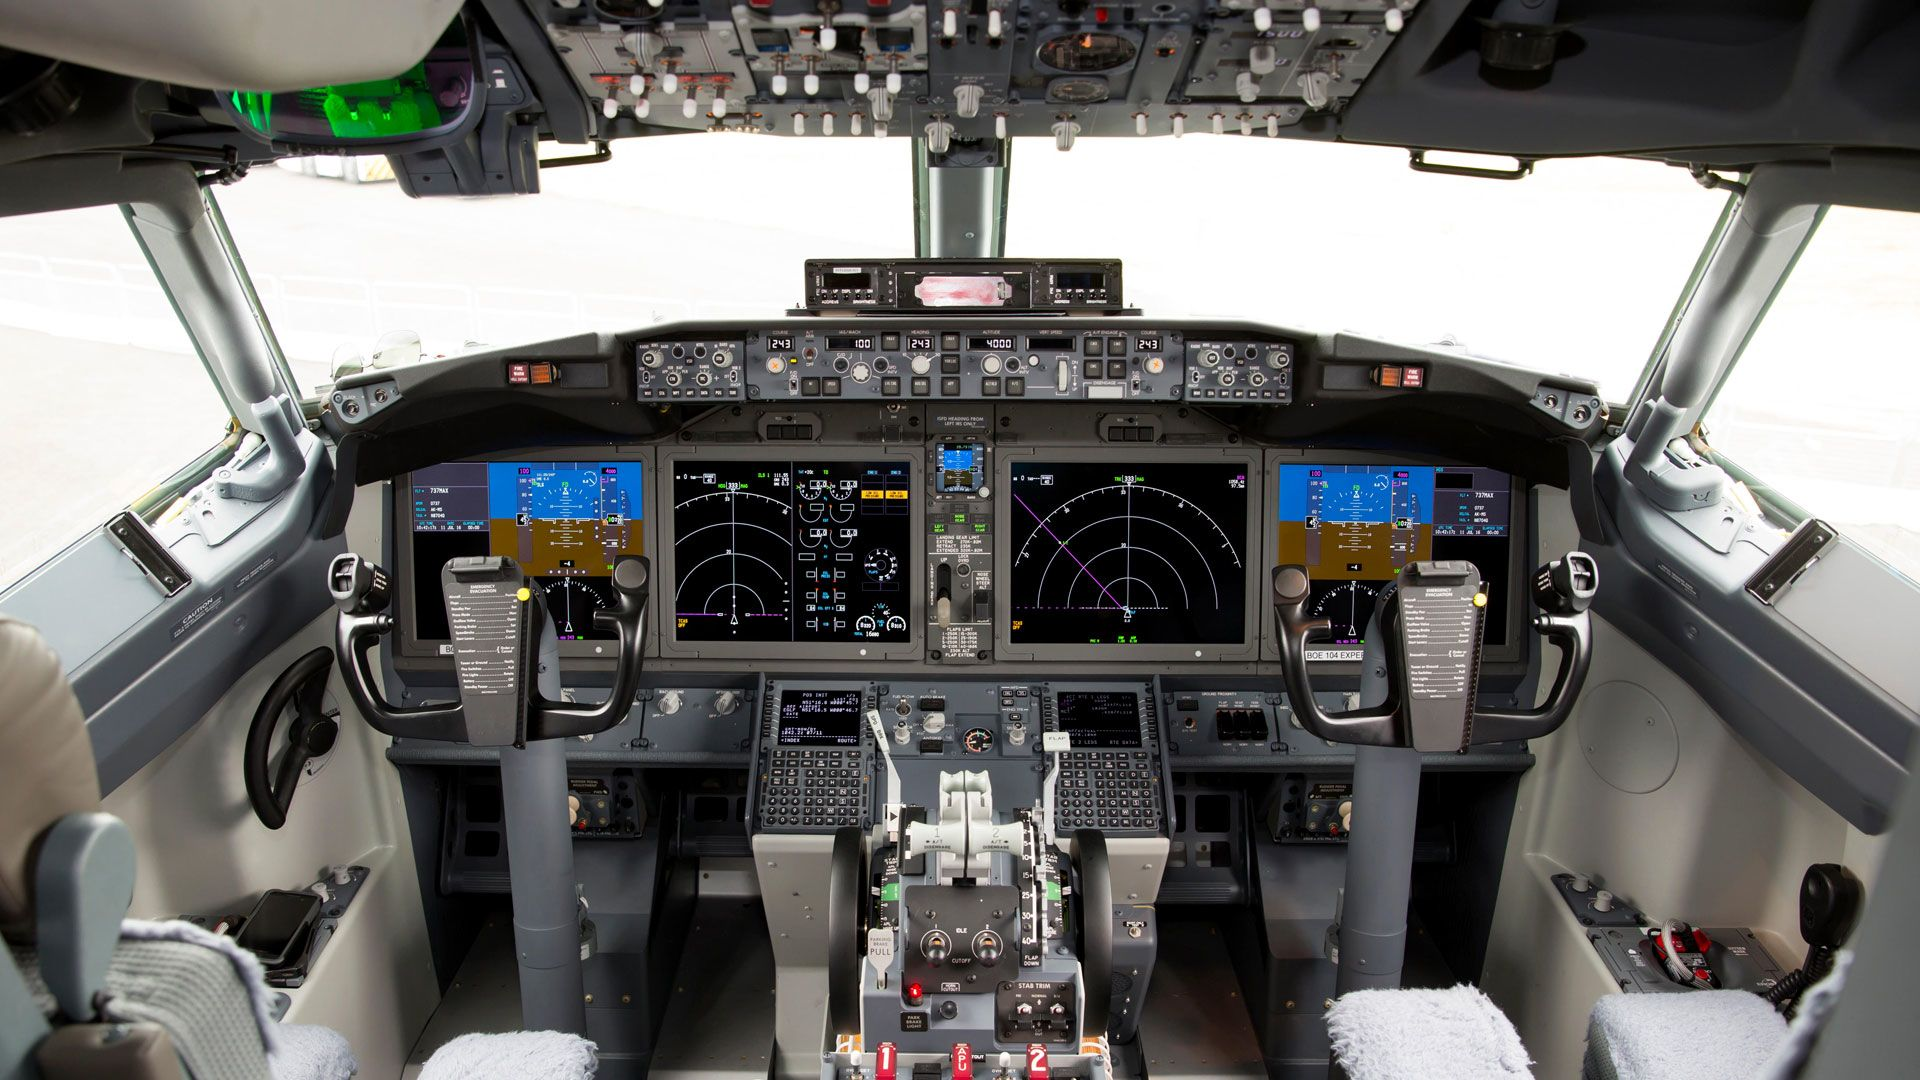 What went wrong inside Boeing's cockpit?